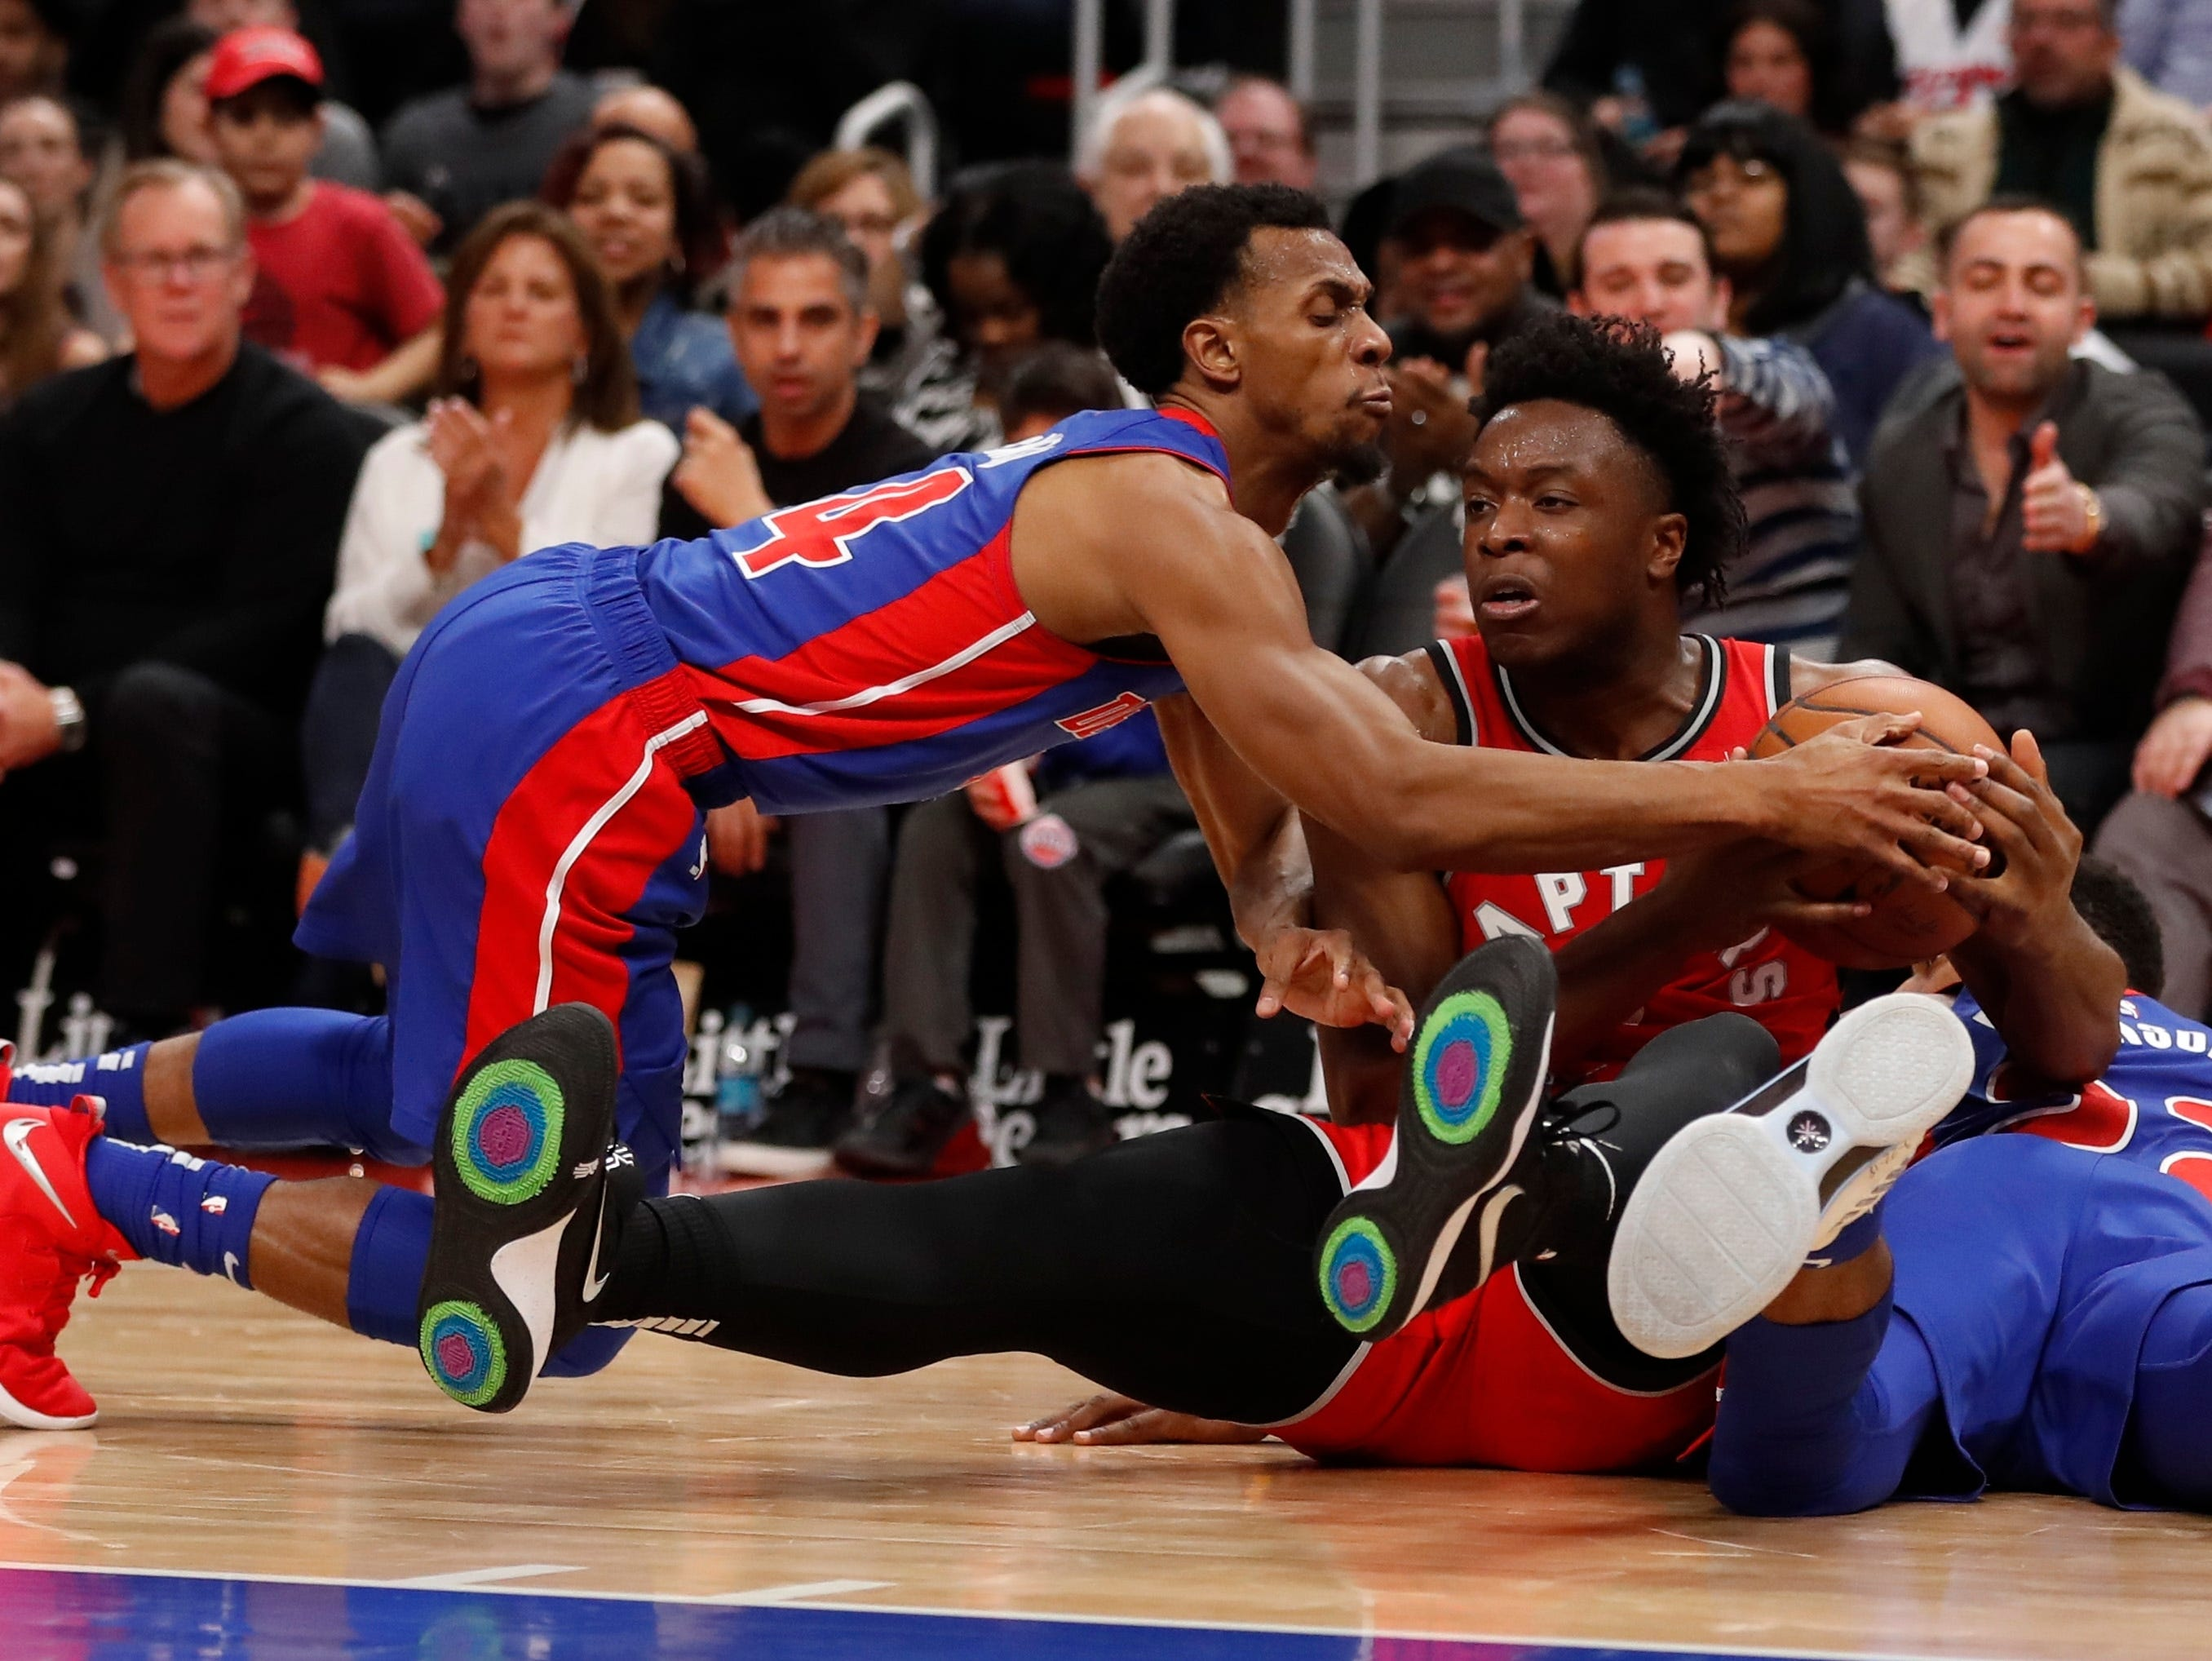 Detroit Pistons guard Ish Smith, left, and Toronto Raptors forward OG Anunoby chase the loose ball during the second half of an NBA basketball game, Sunday, March 3, 2019, in Detroit. Detroit defeated Toronto 112-107 in overtime.